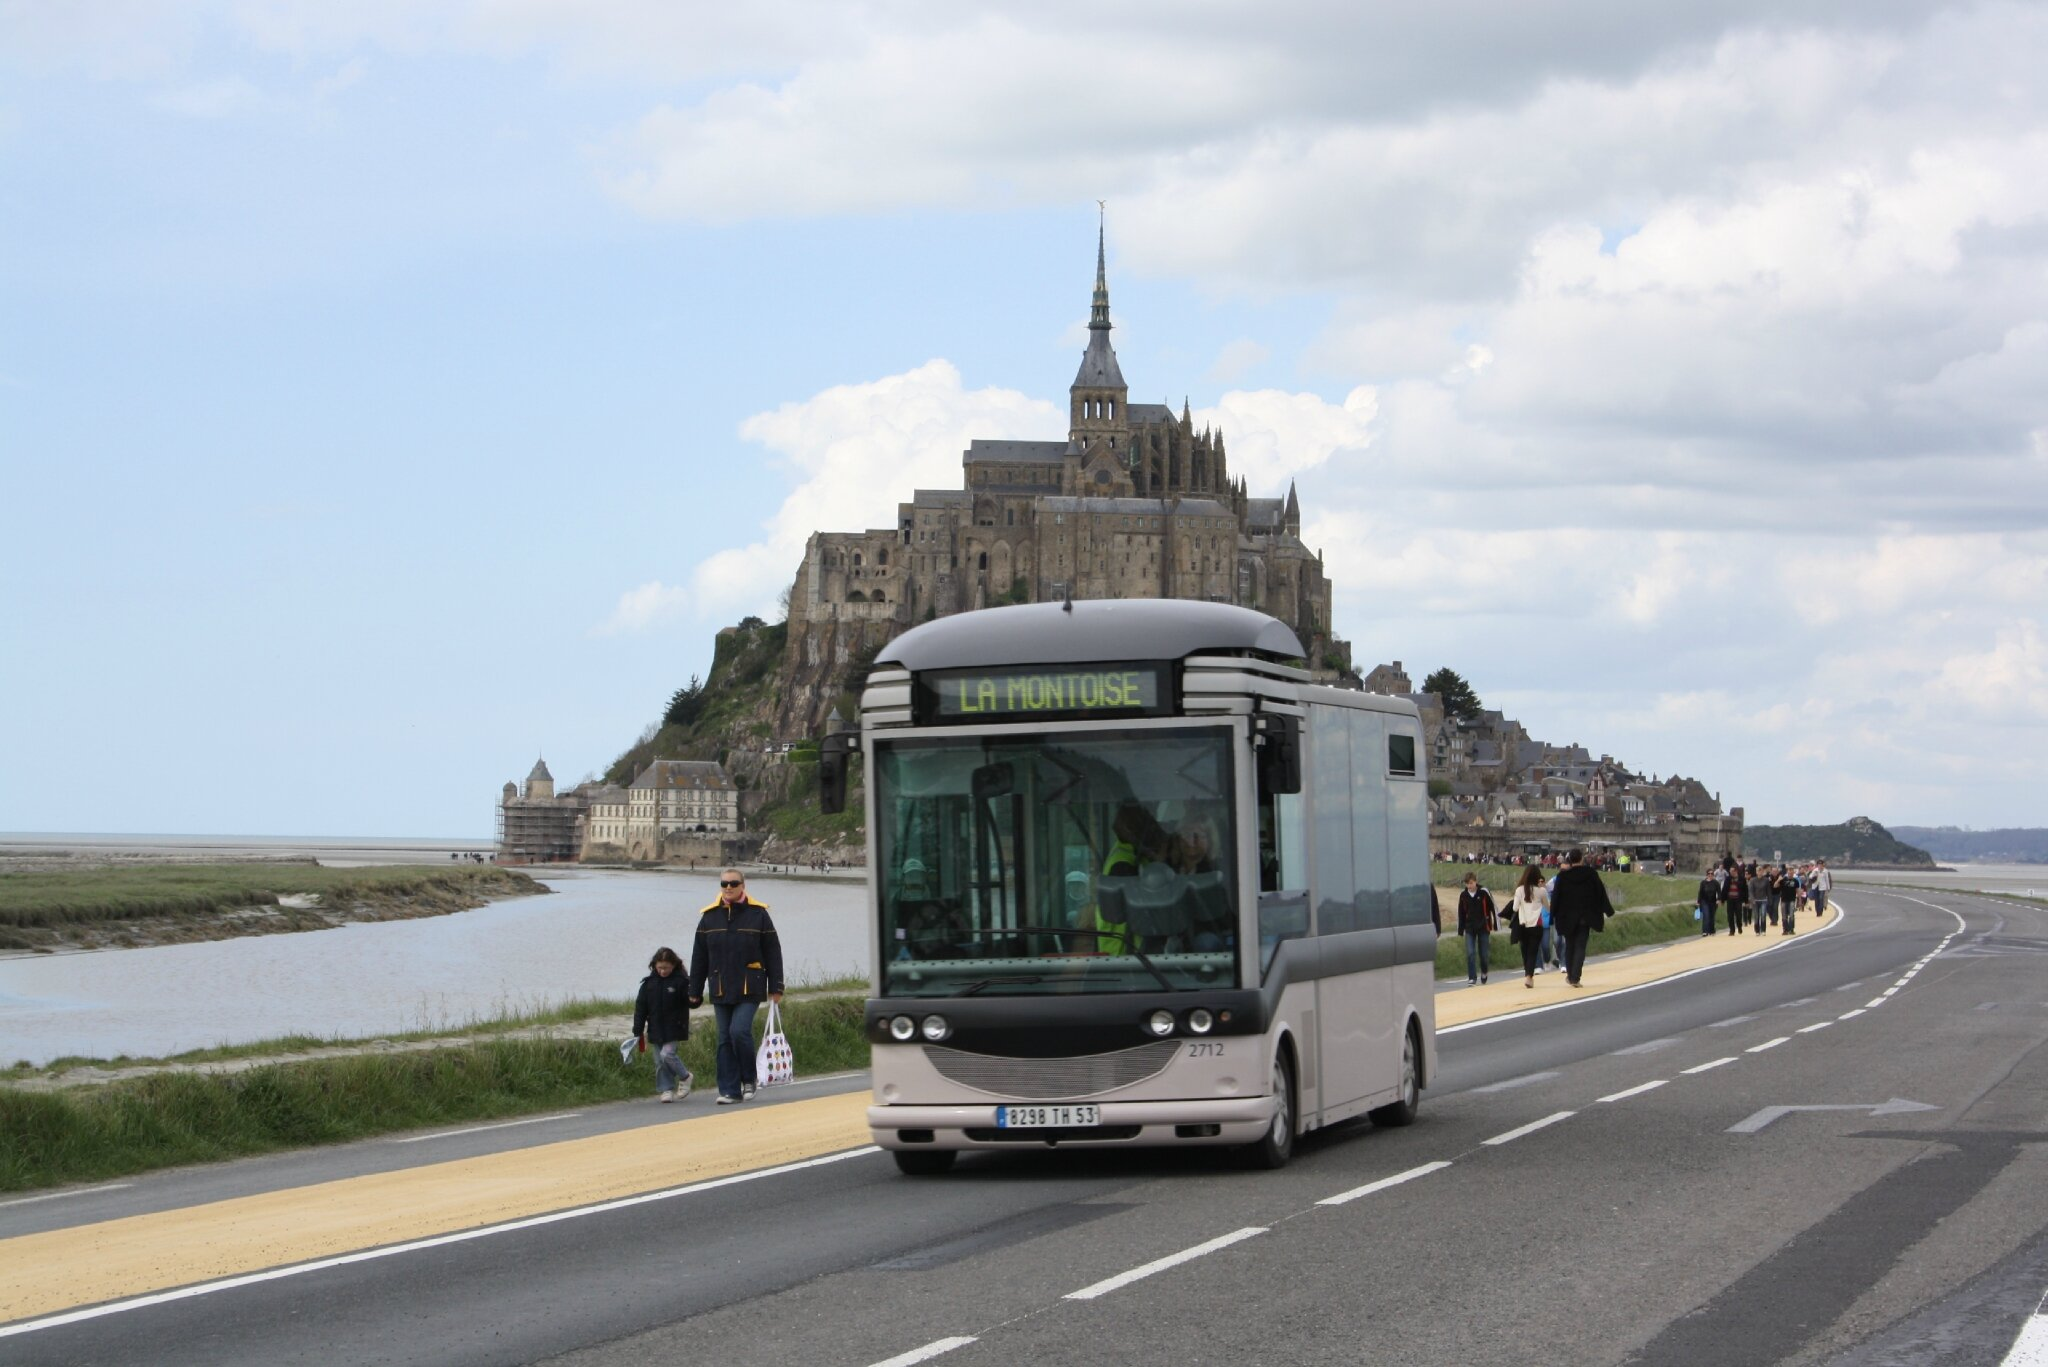 actions et r 233 actions apr 232 s les modifications d acc 232 s au mont michel lundi 3 juin 2013